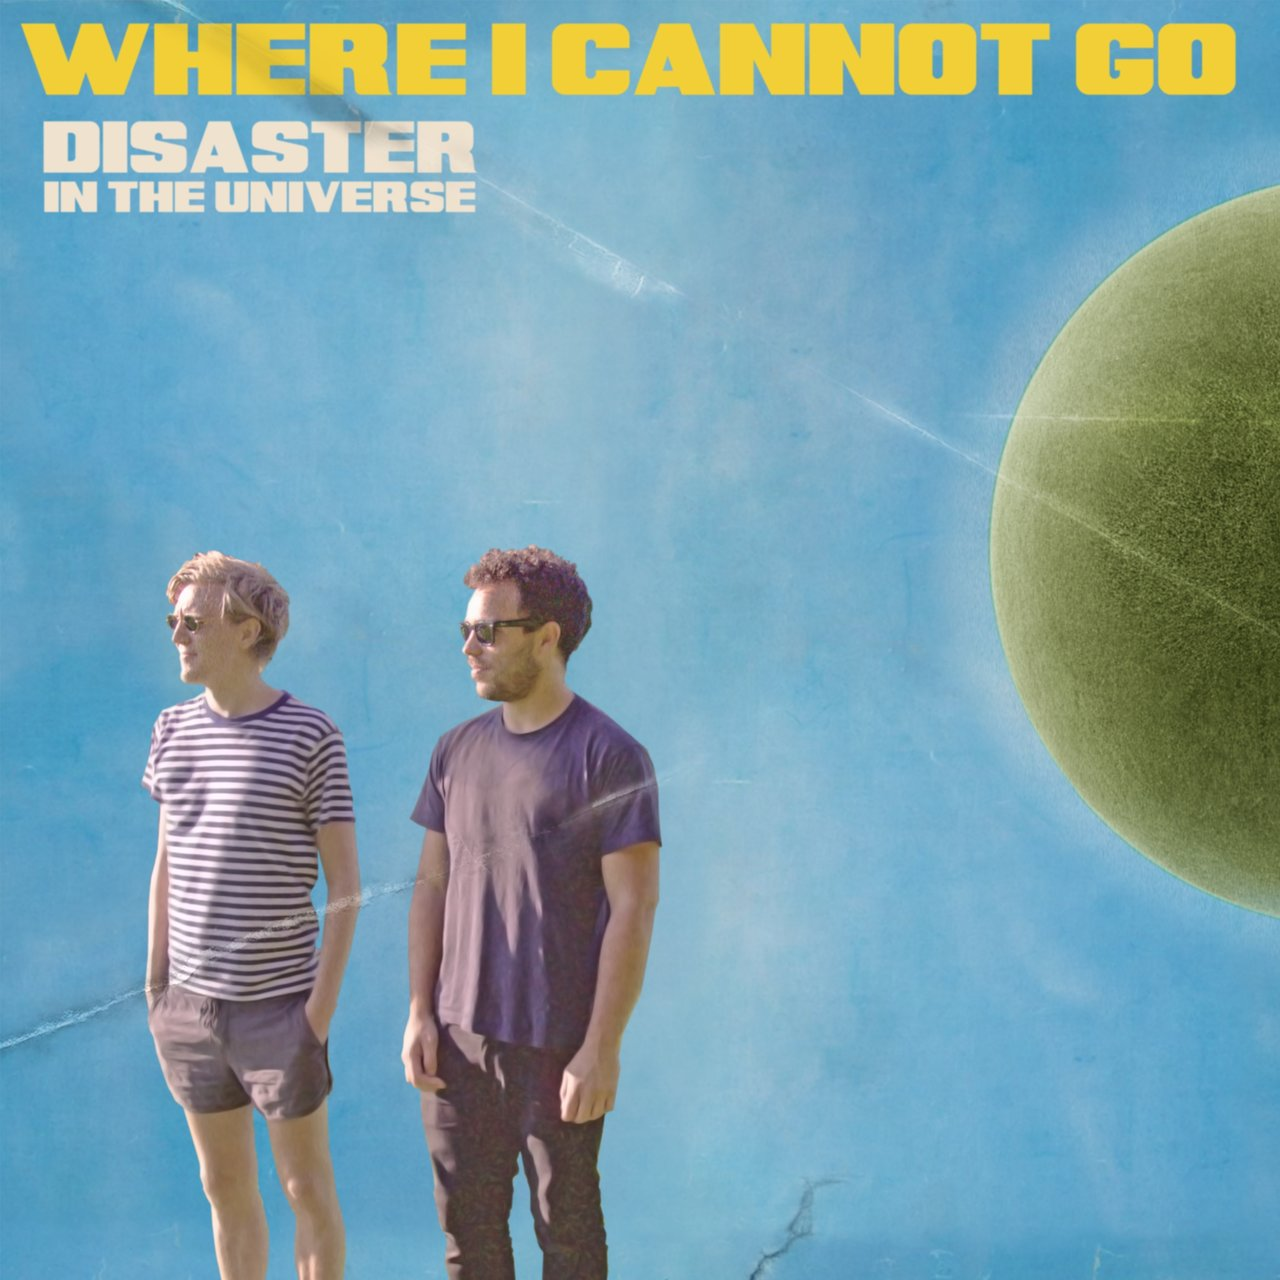 Where I Cannot Go (Radio Edit)